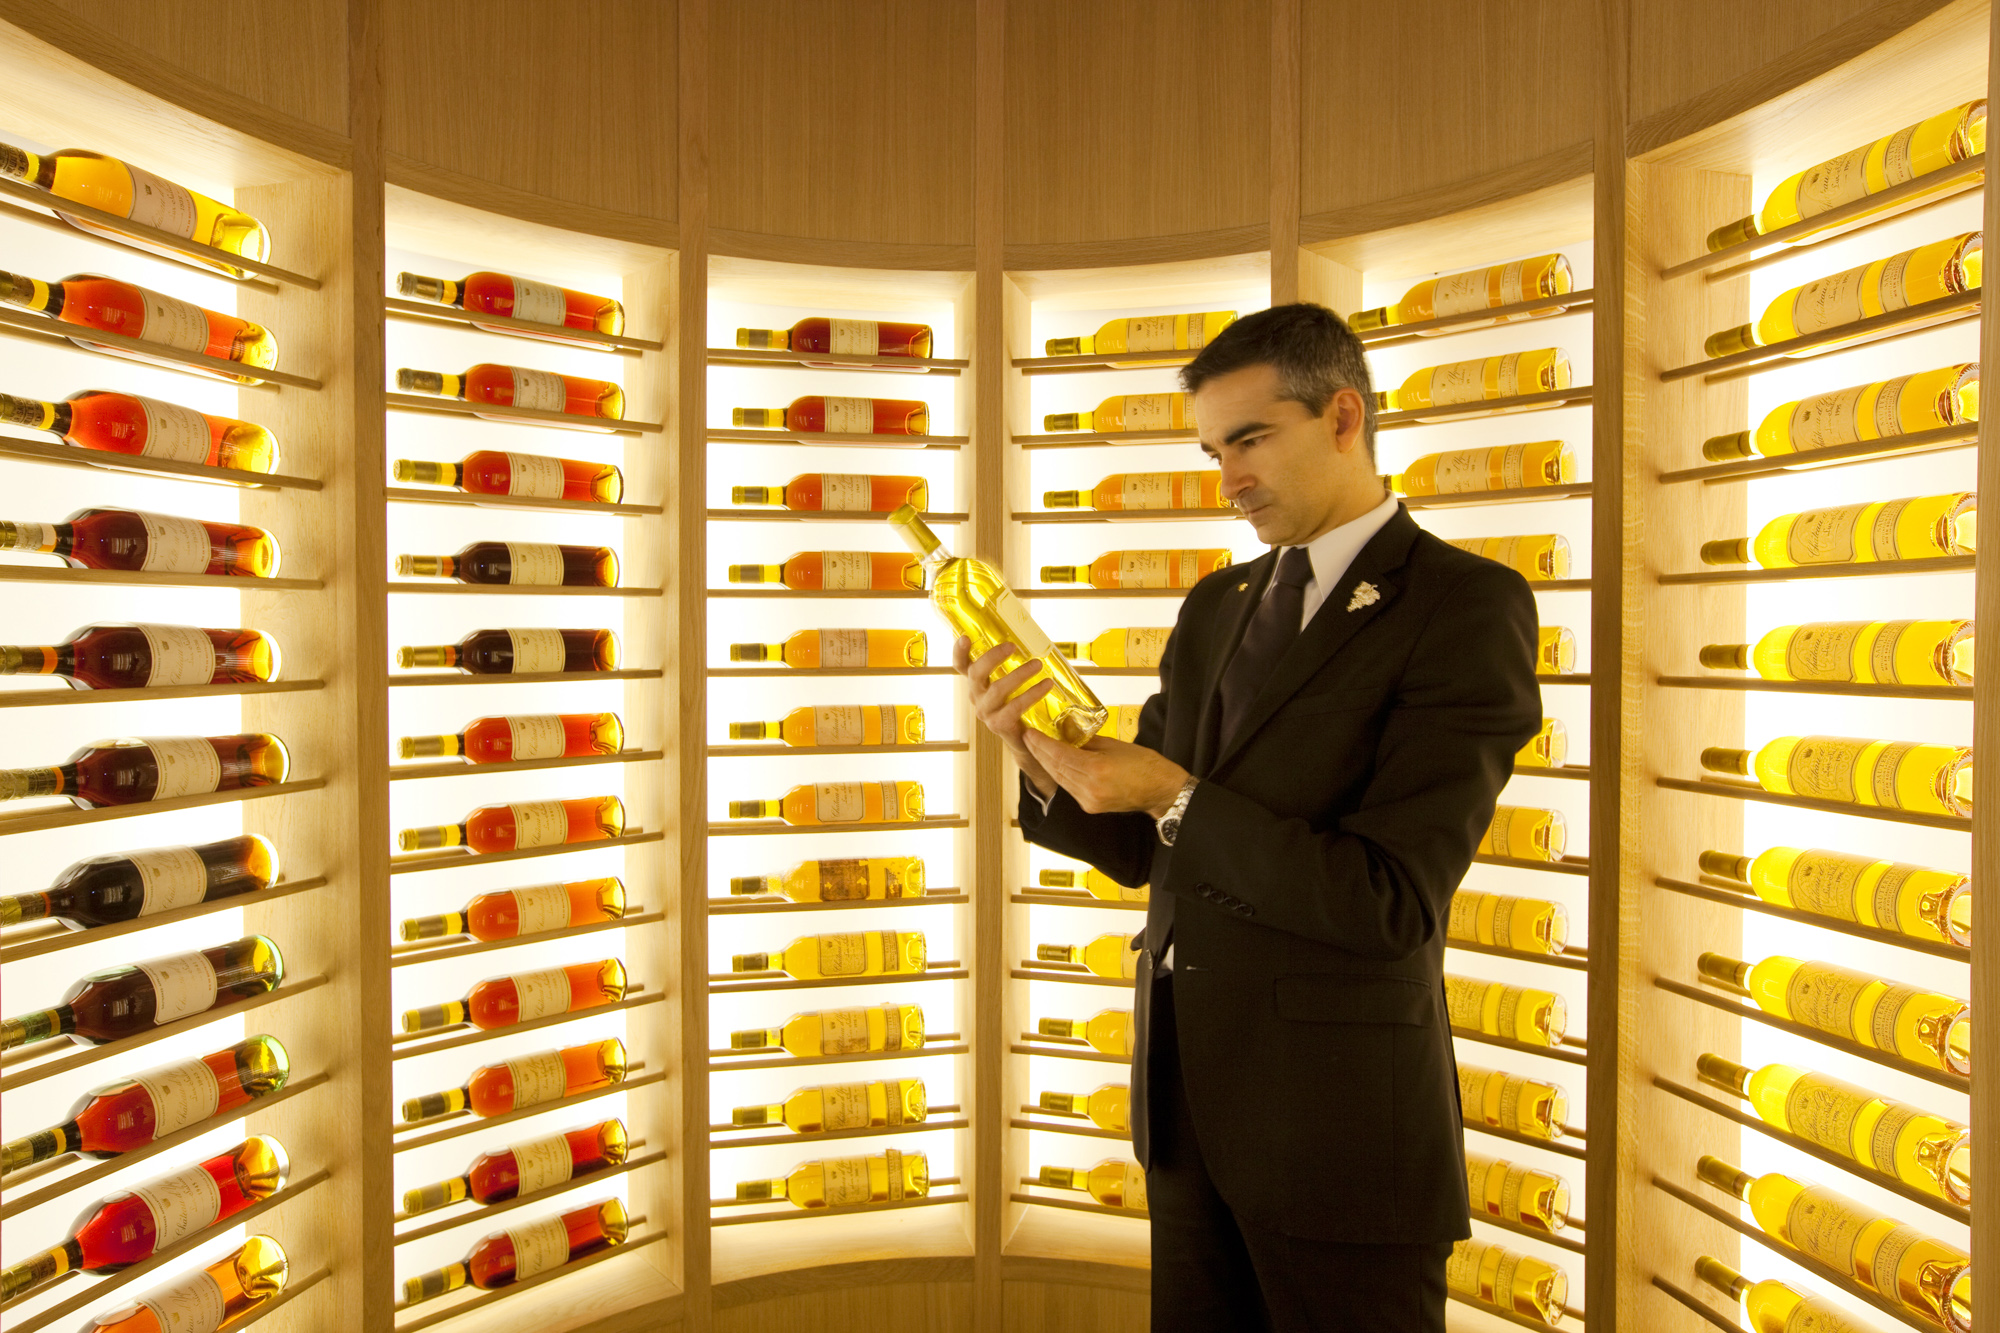 Europa, Spanien, Region Extremadura, Cáceres, Atrio Restaurant, Bodega, wine cellar, sommelier in the sanctuary of Château d'Yquem White Wines, contains all vintages of the las century.